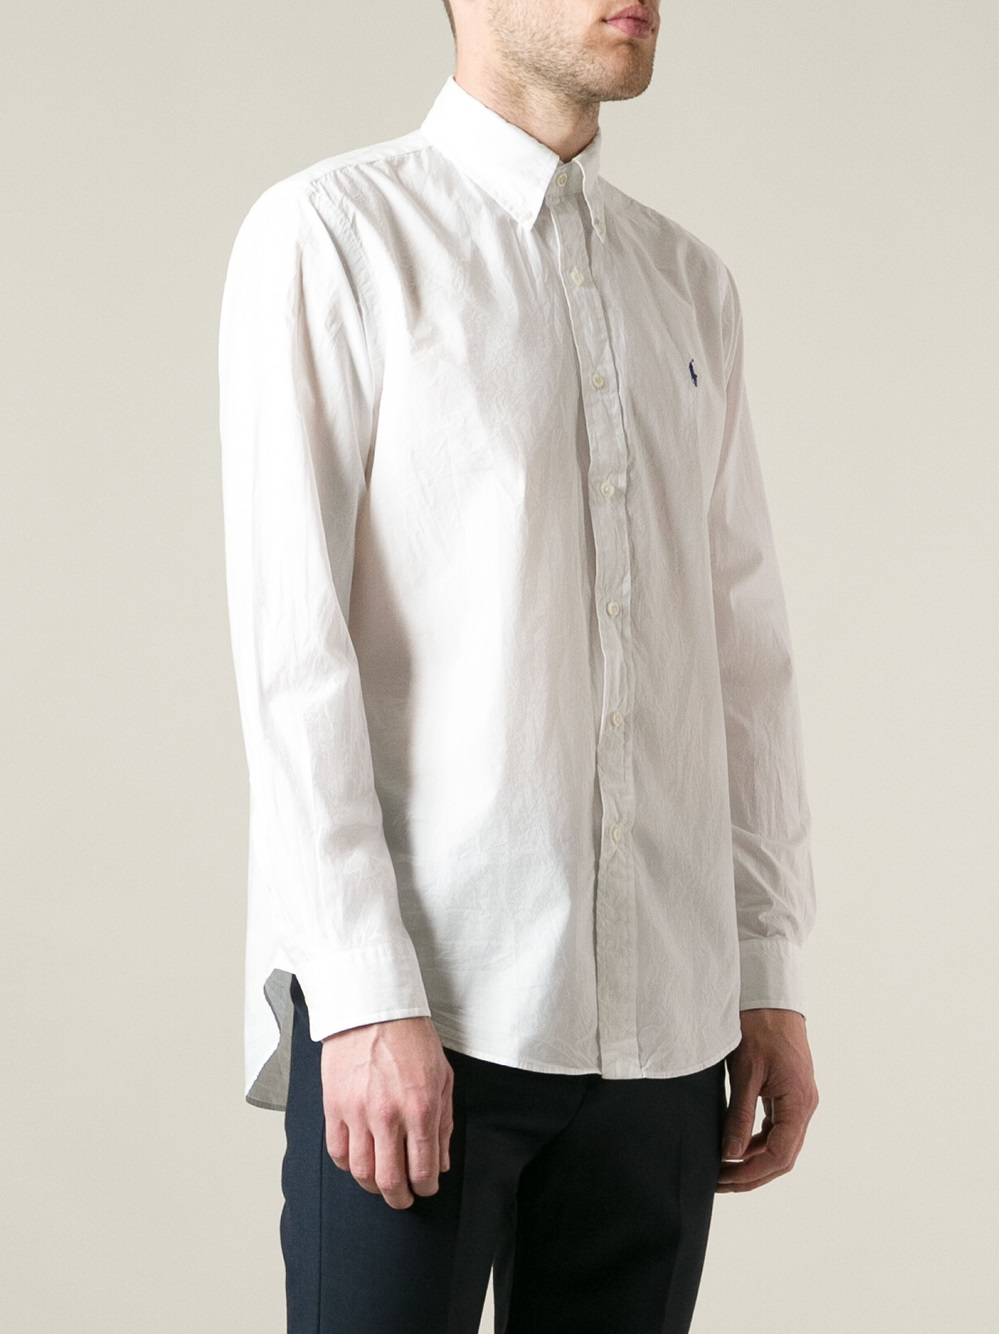 9d33efa6 ... italy lyst polo ralph lauren button down shirt in white for men 9d792  d3a50